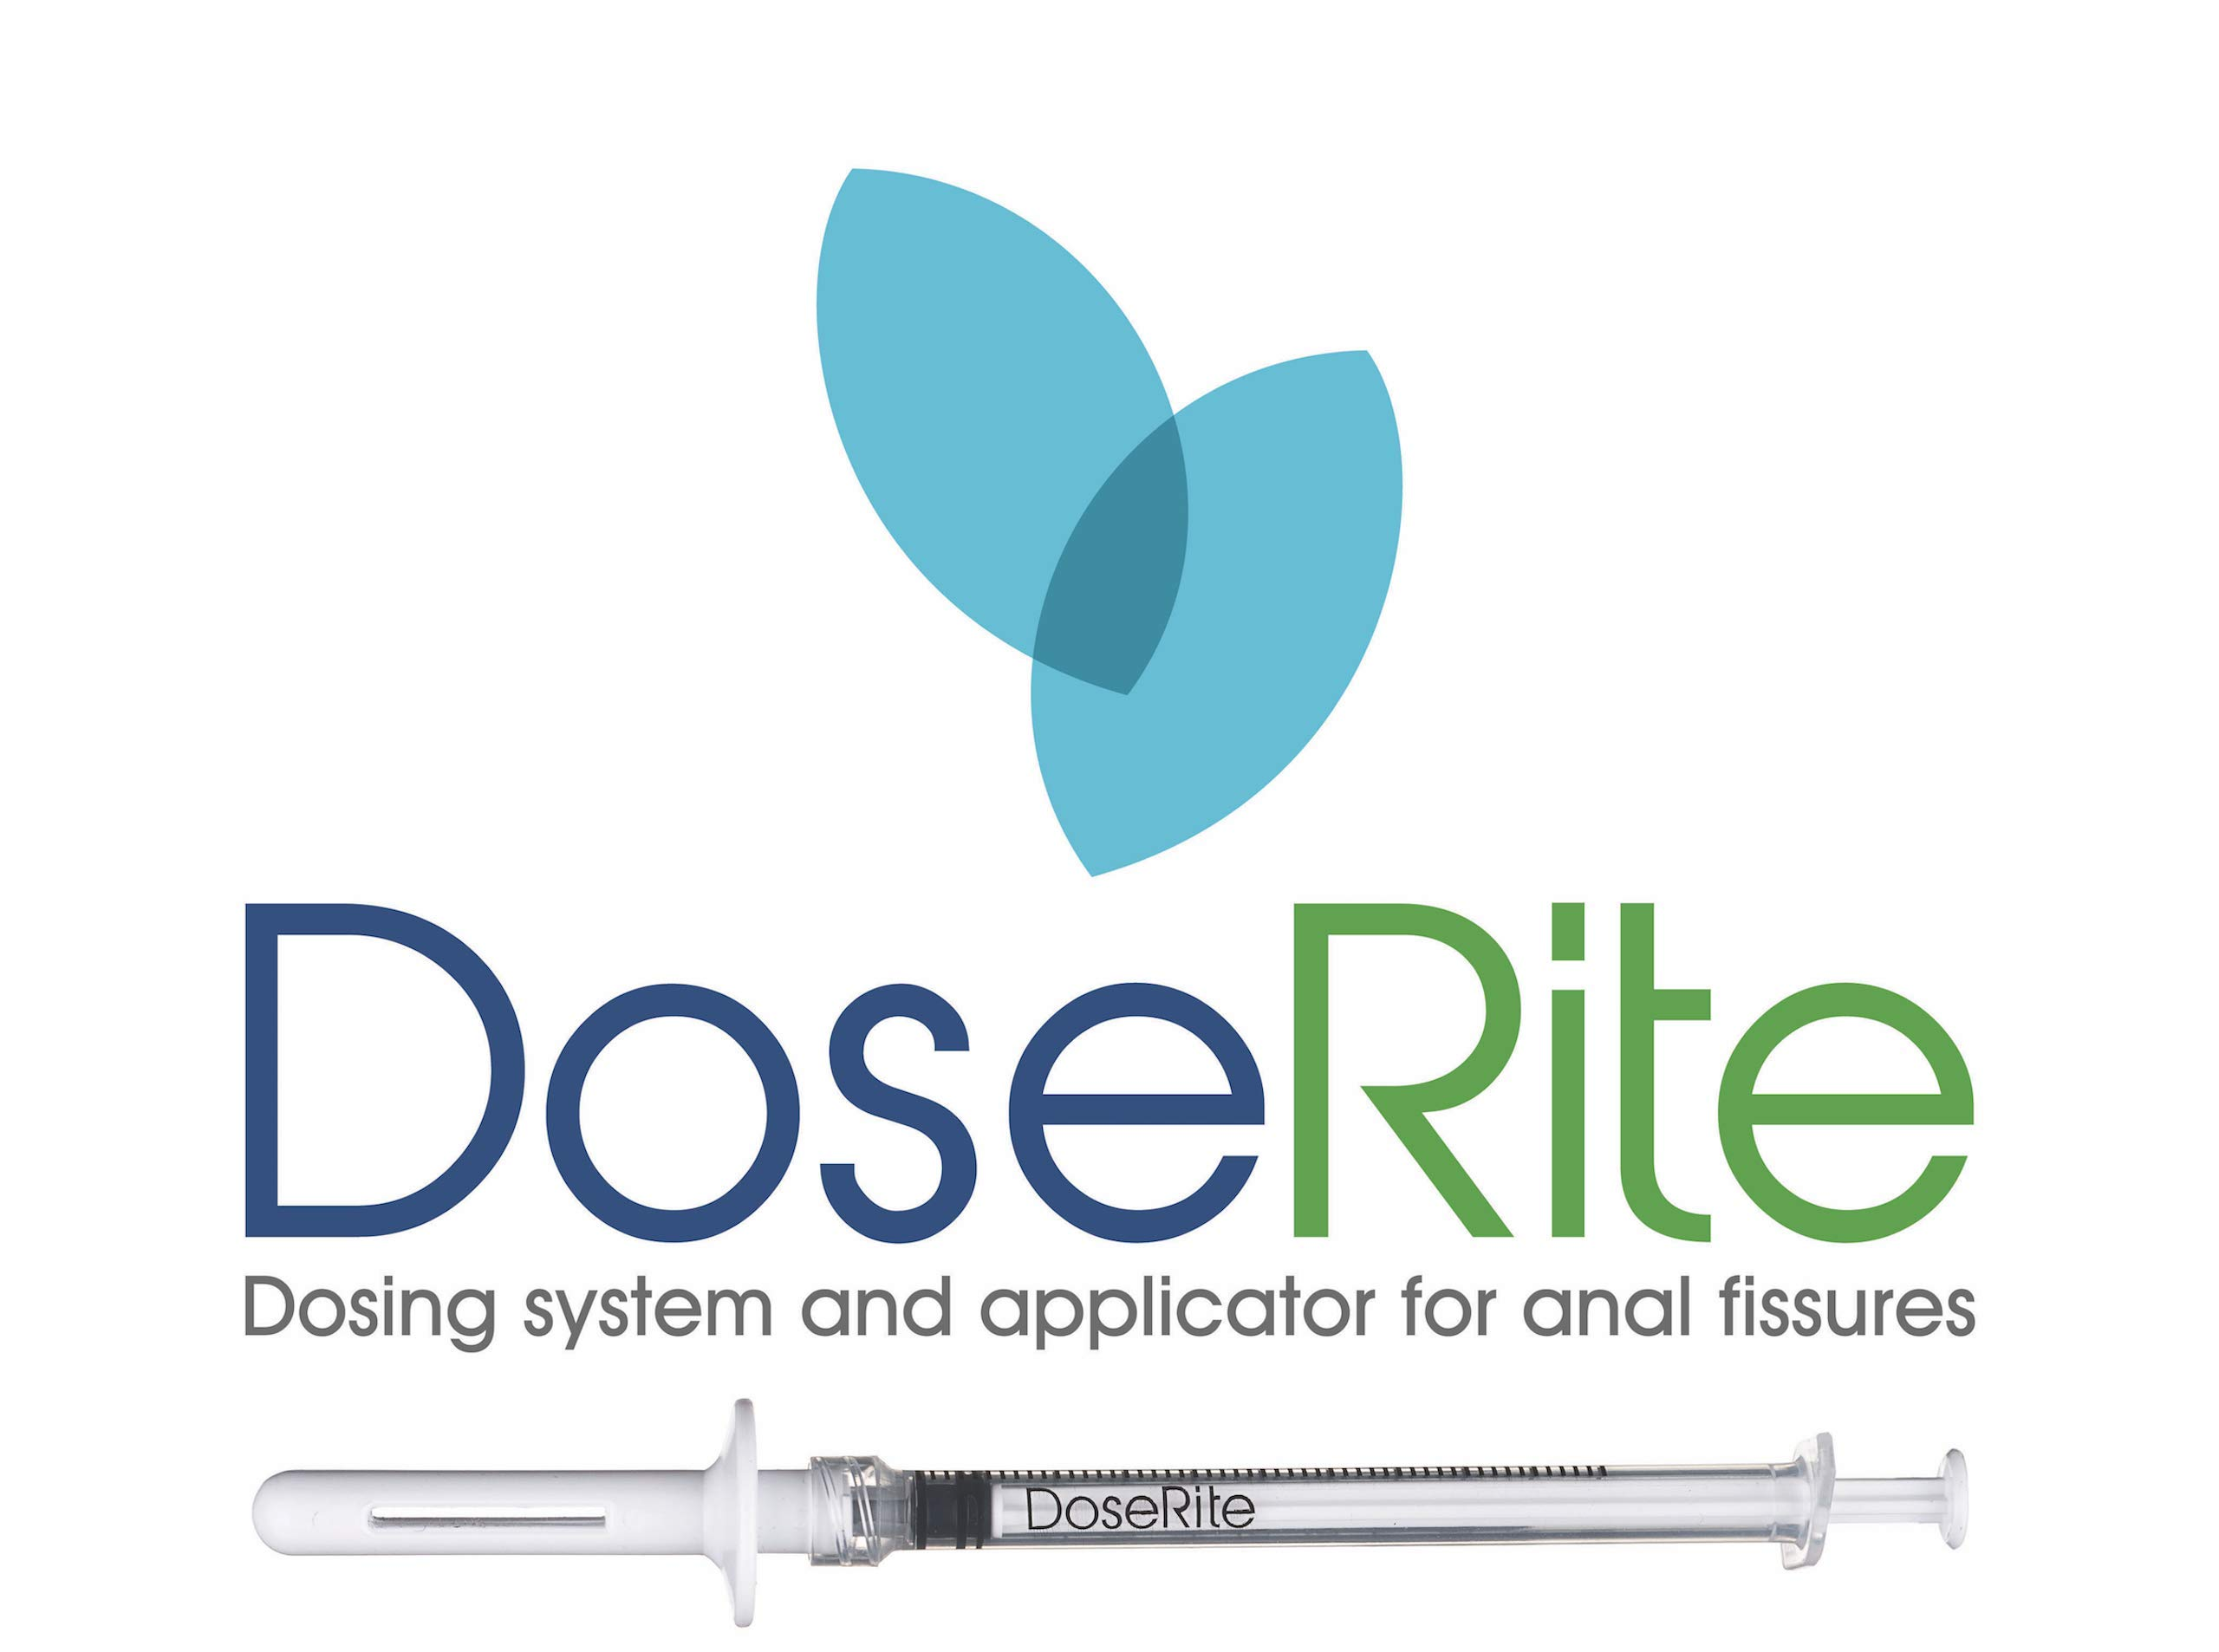 DoseRiteTM Applicators for Anal Fissure - Disposable Pack with Jar